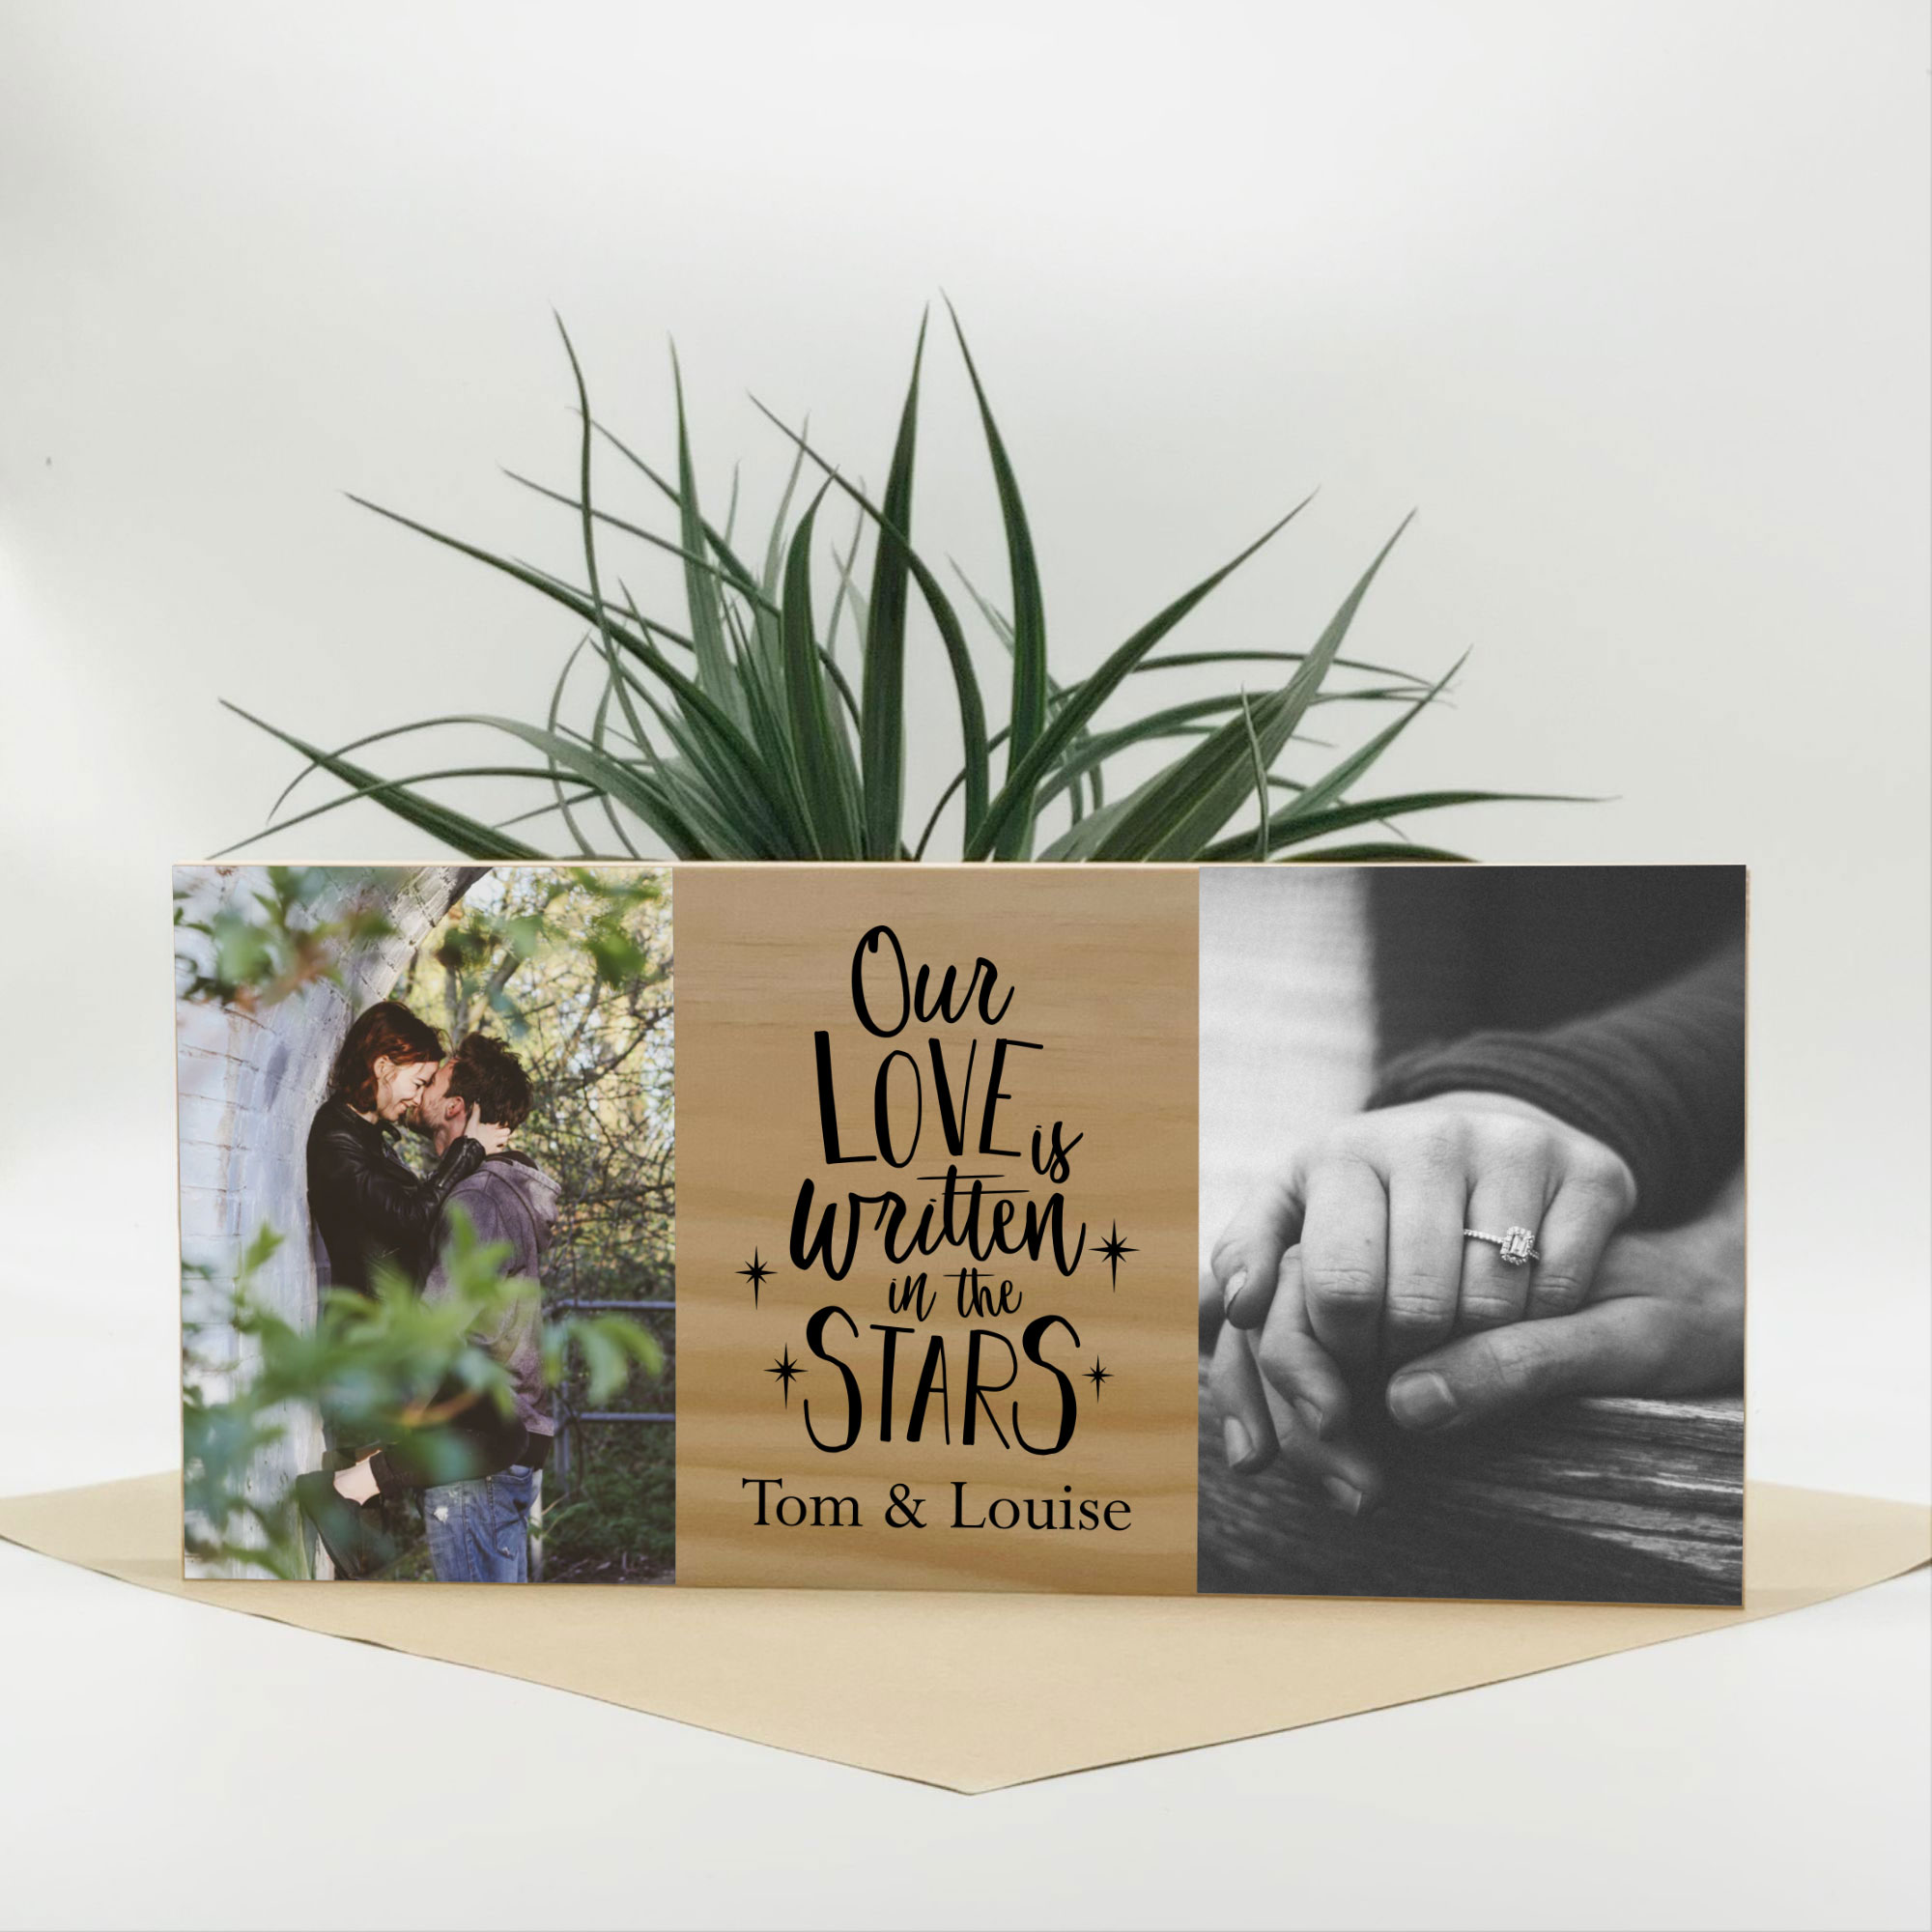 personalised-photo-gifts-valentines-day-gifts-photo-on-wooden-block